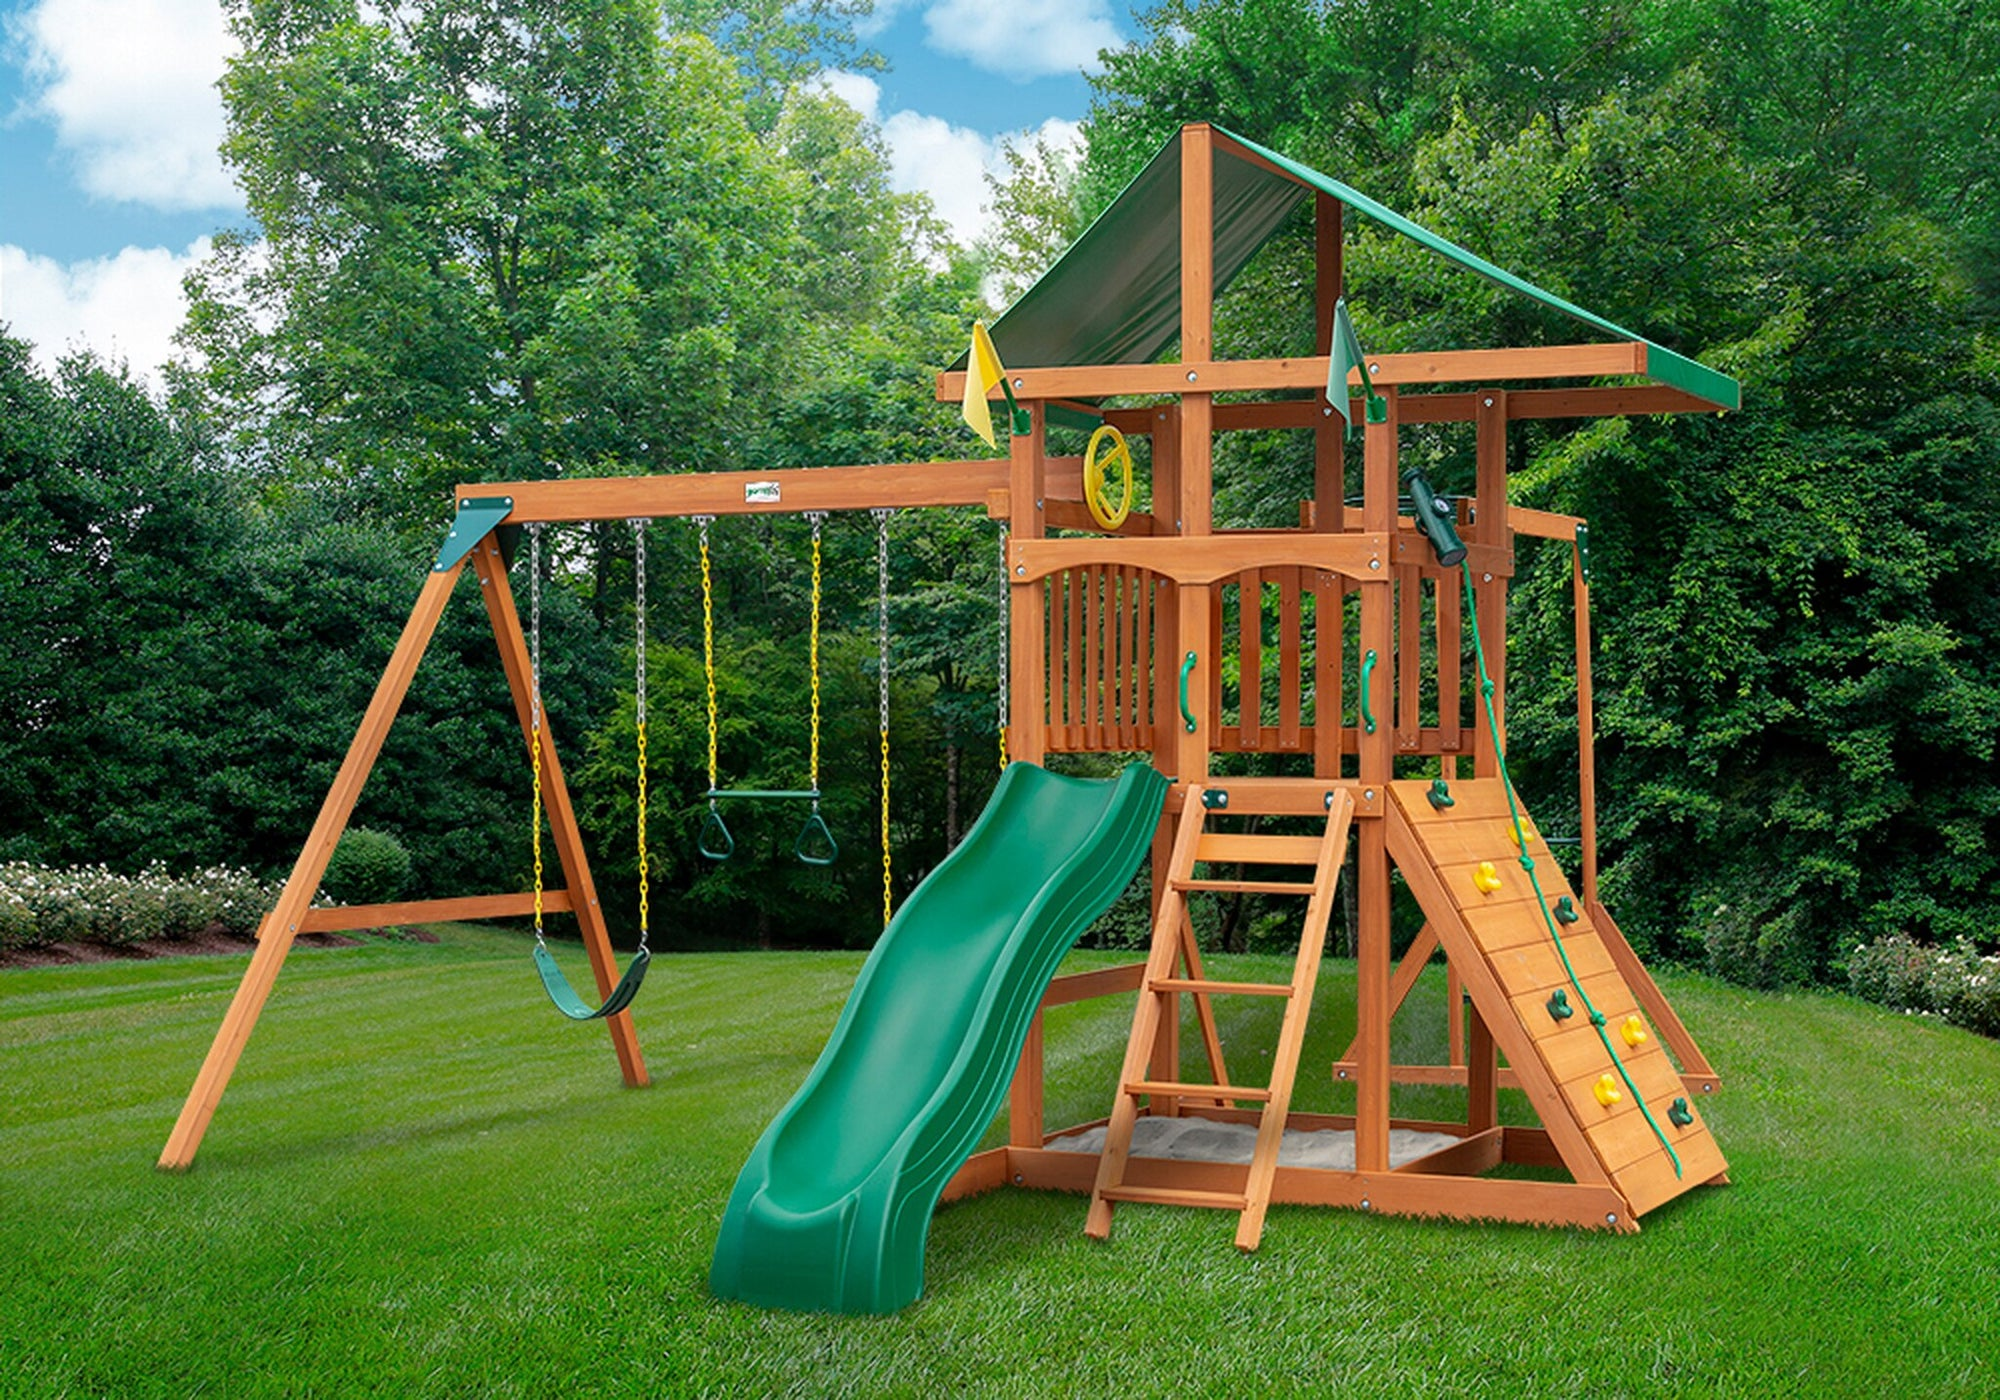 Gorilla-Playsets-Outing-W-Monkey-Bars-Wooden-Swing-Front